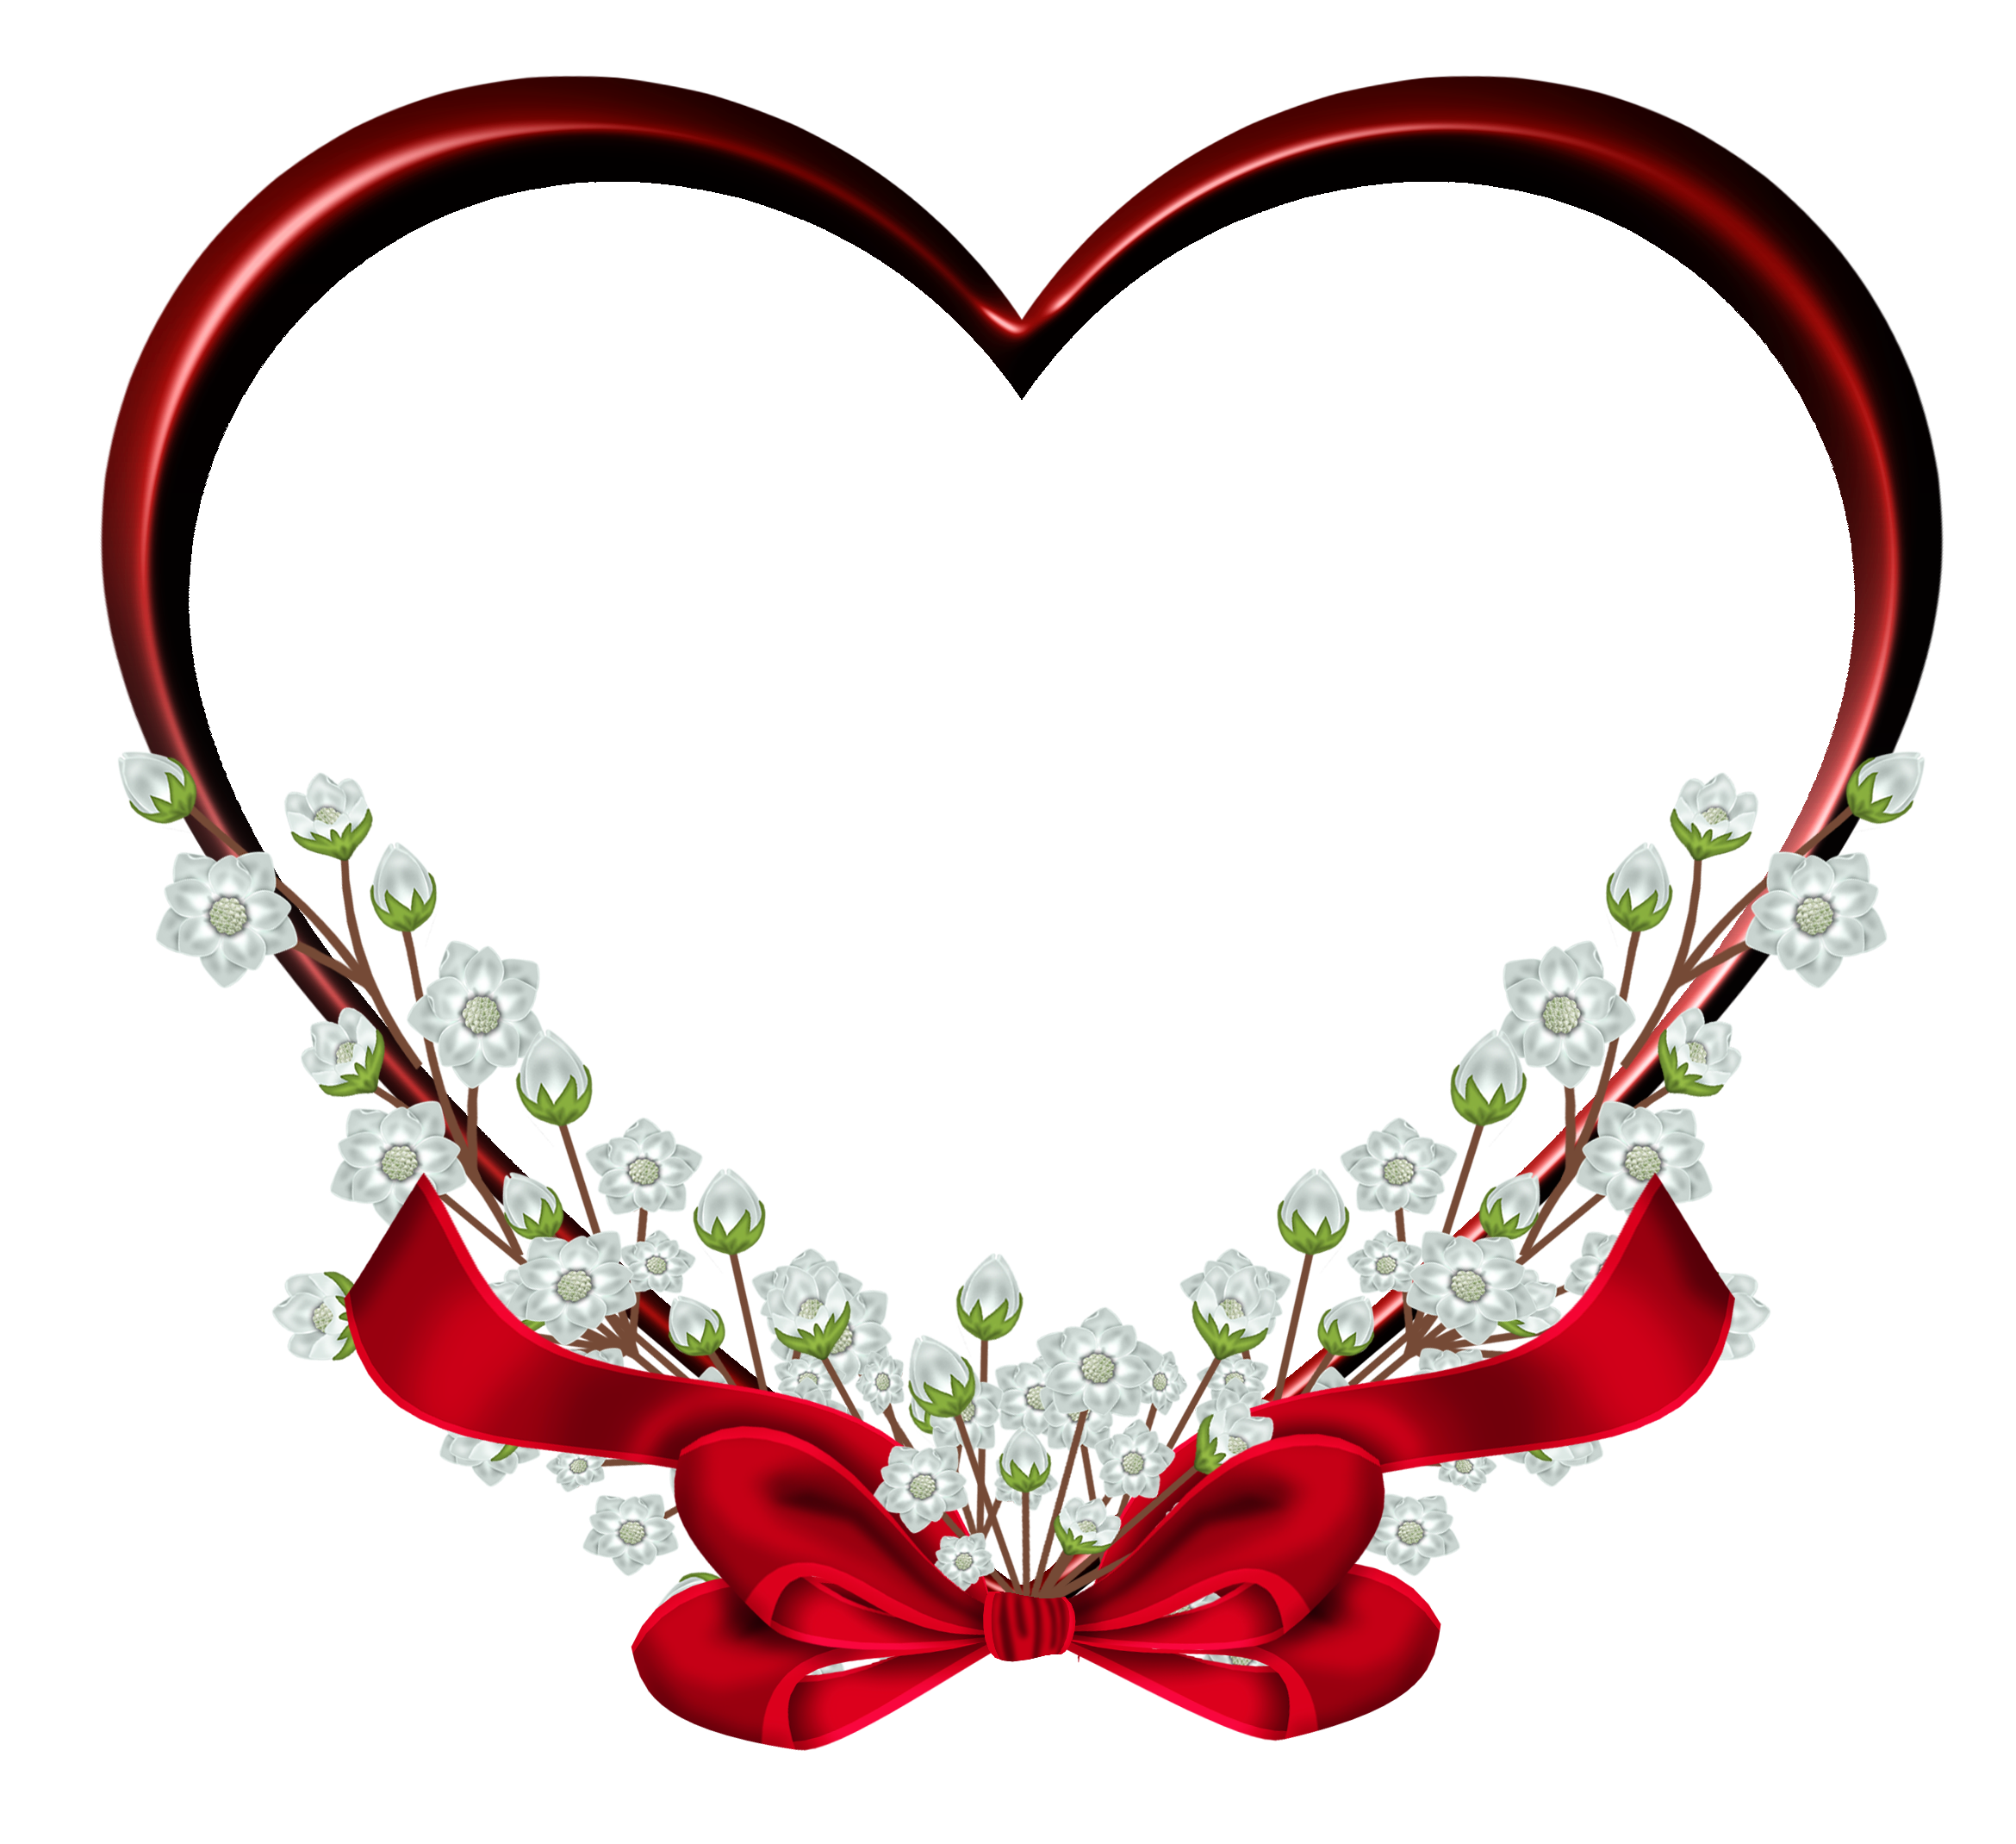 Transparent red decor clipart. Heart frame png vector black and white download